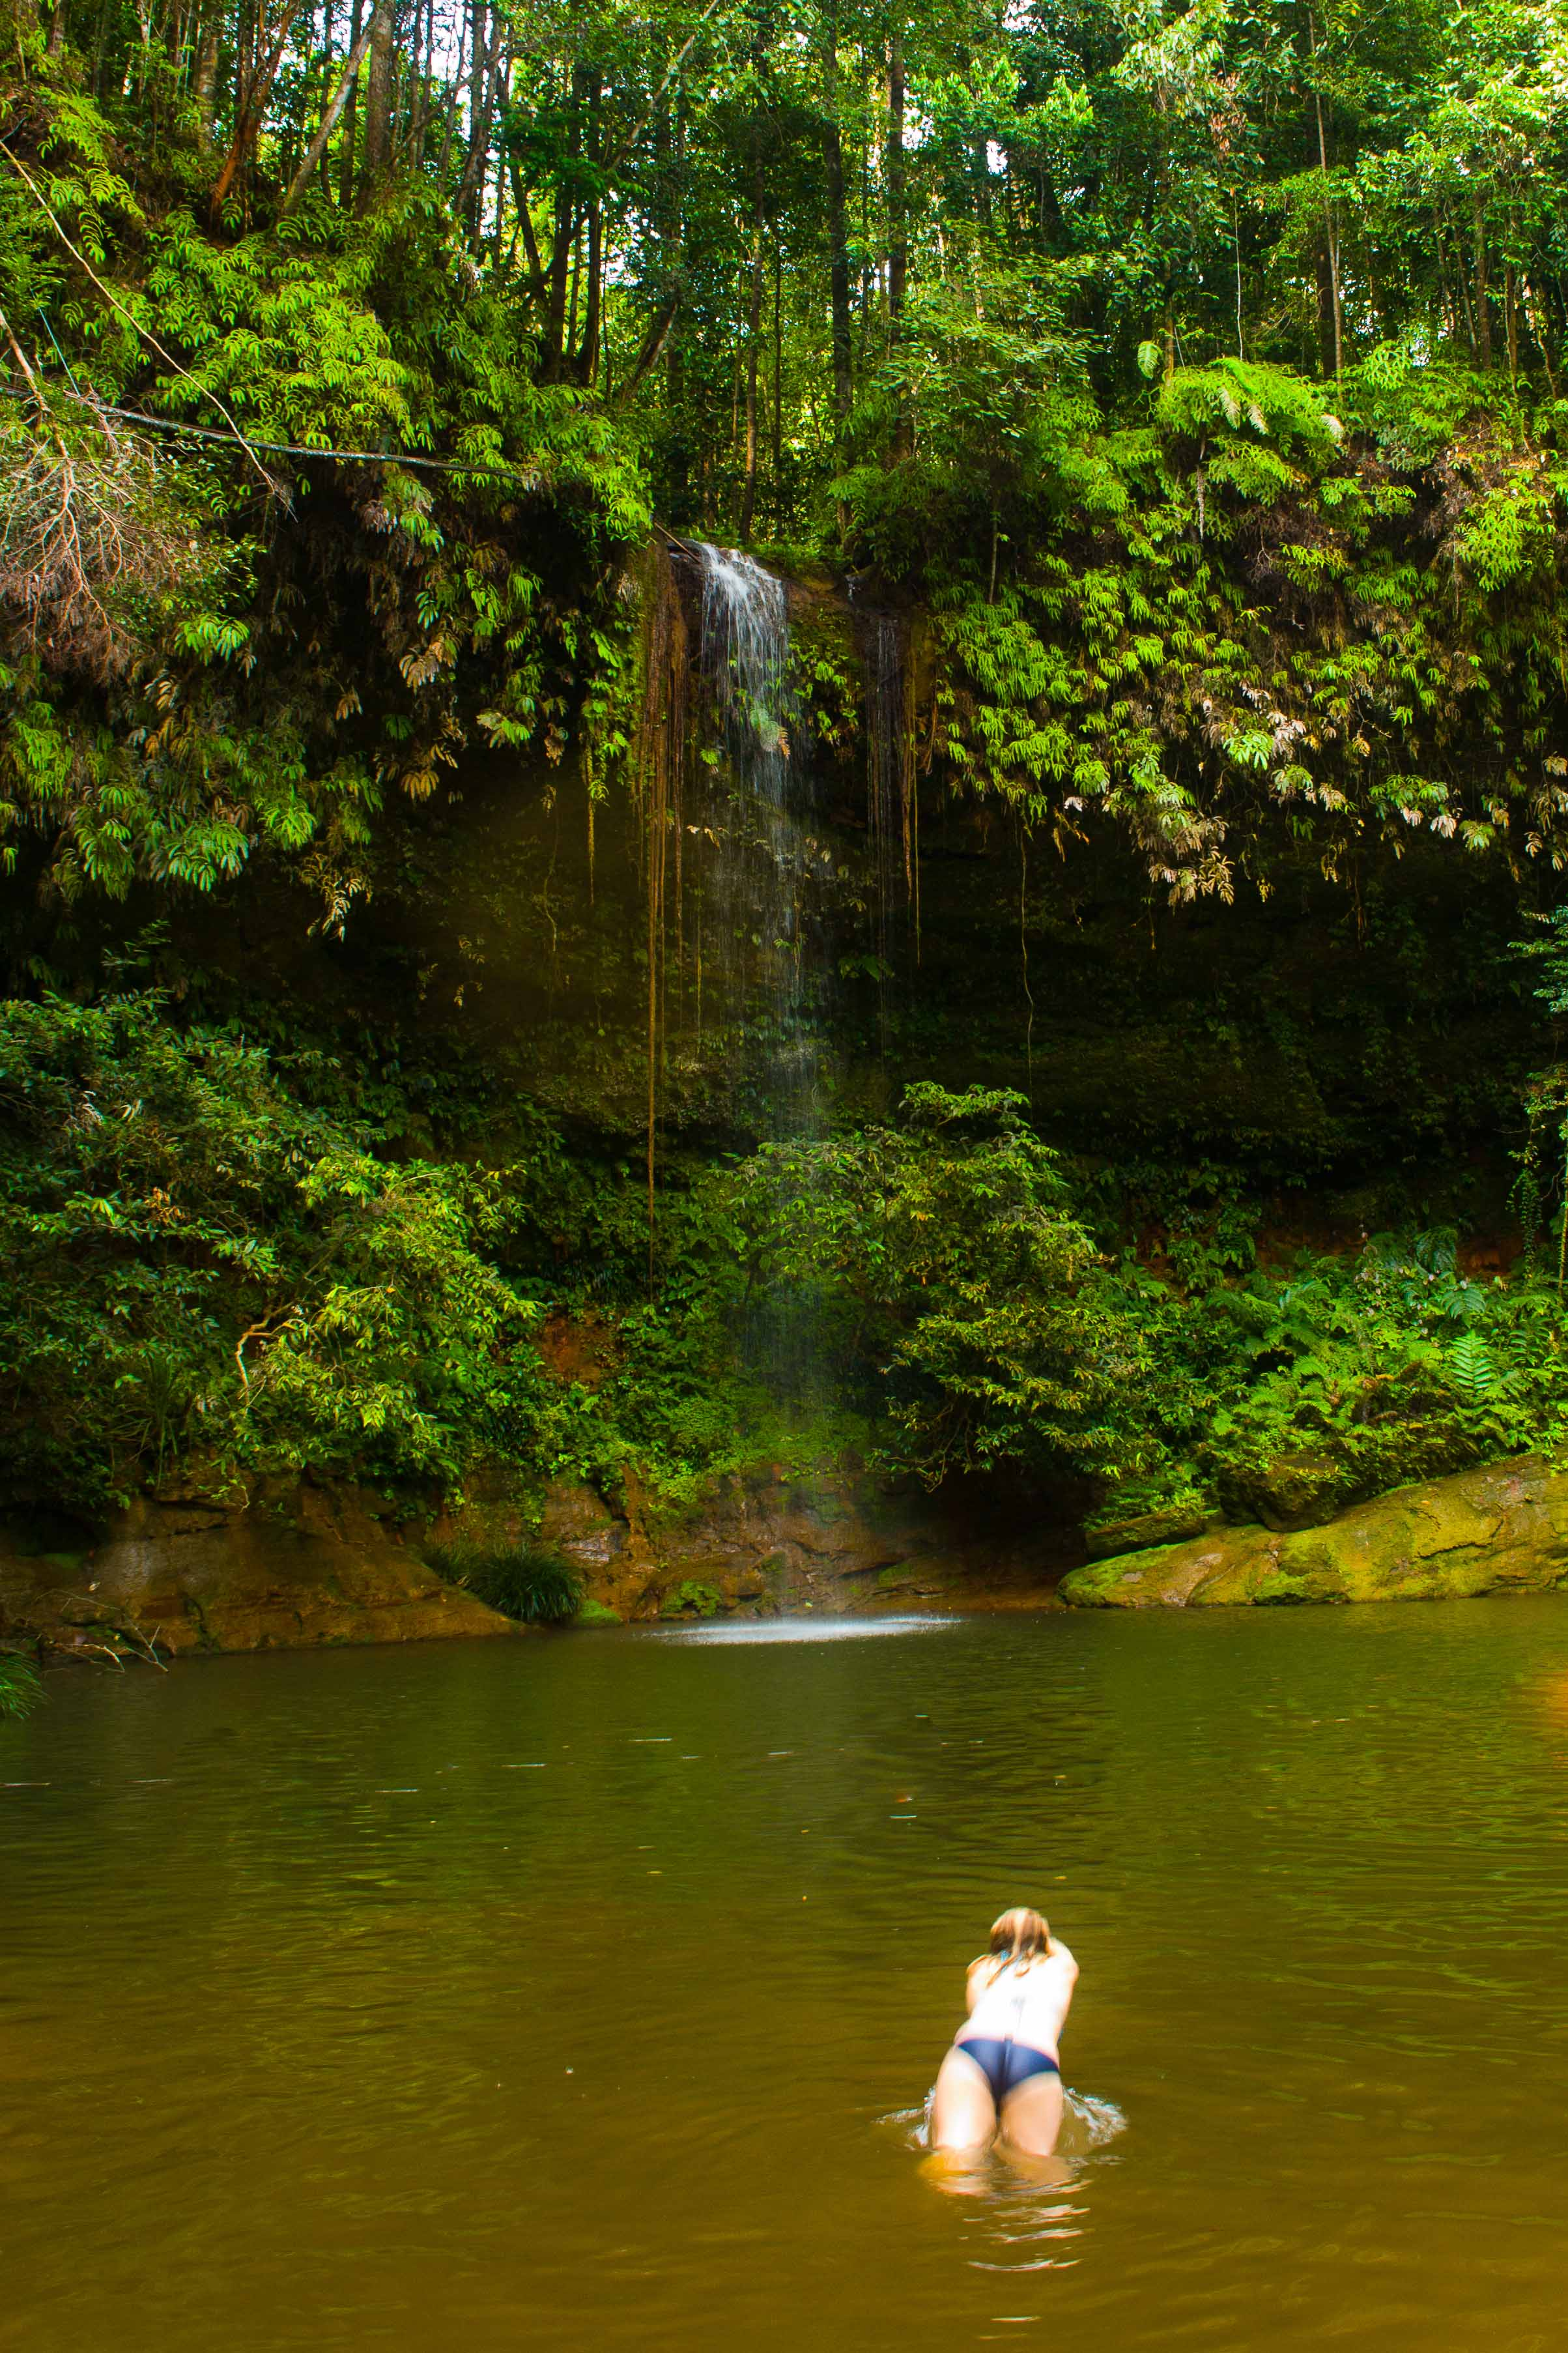 Taking the plunge into the cool water - Lambir Hills National Park